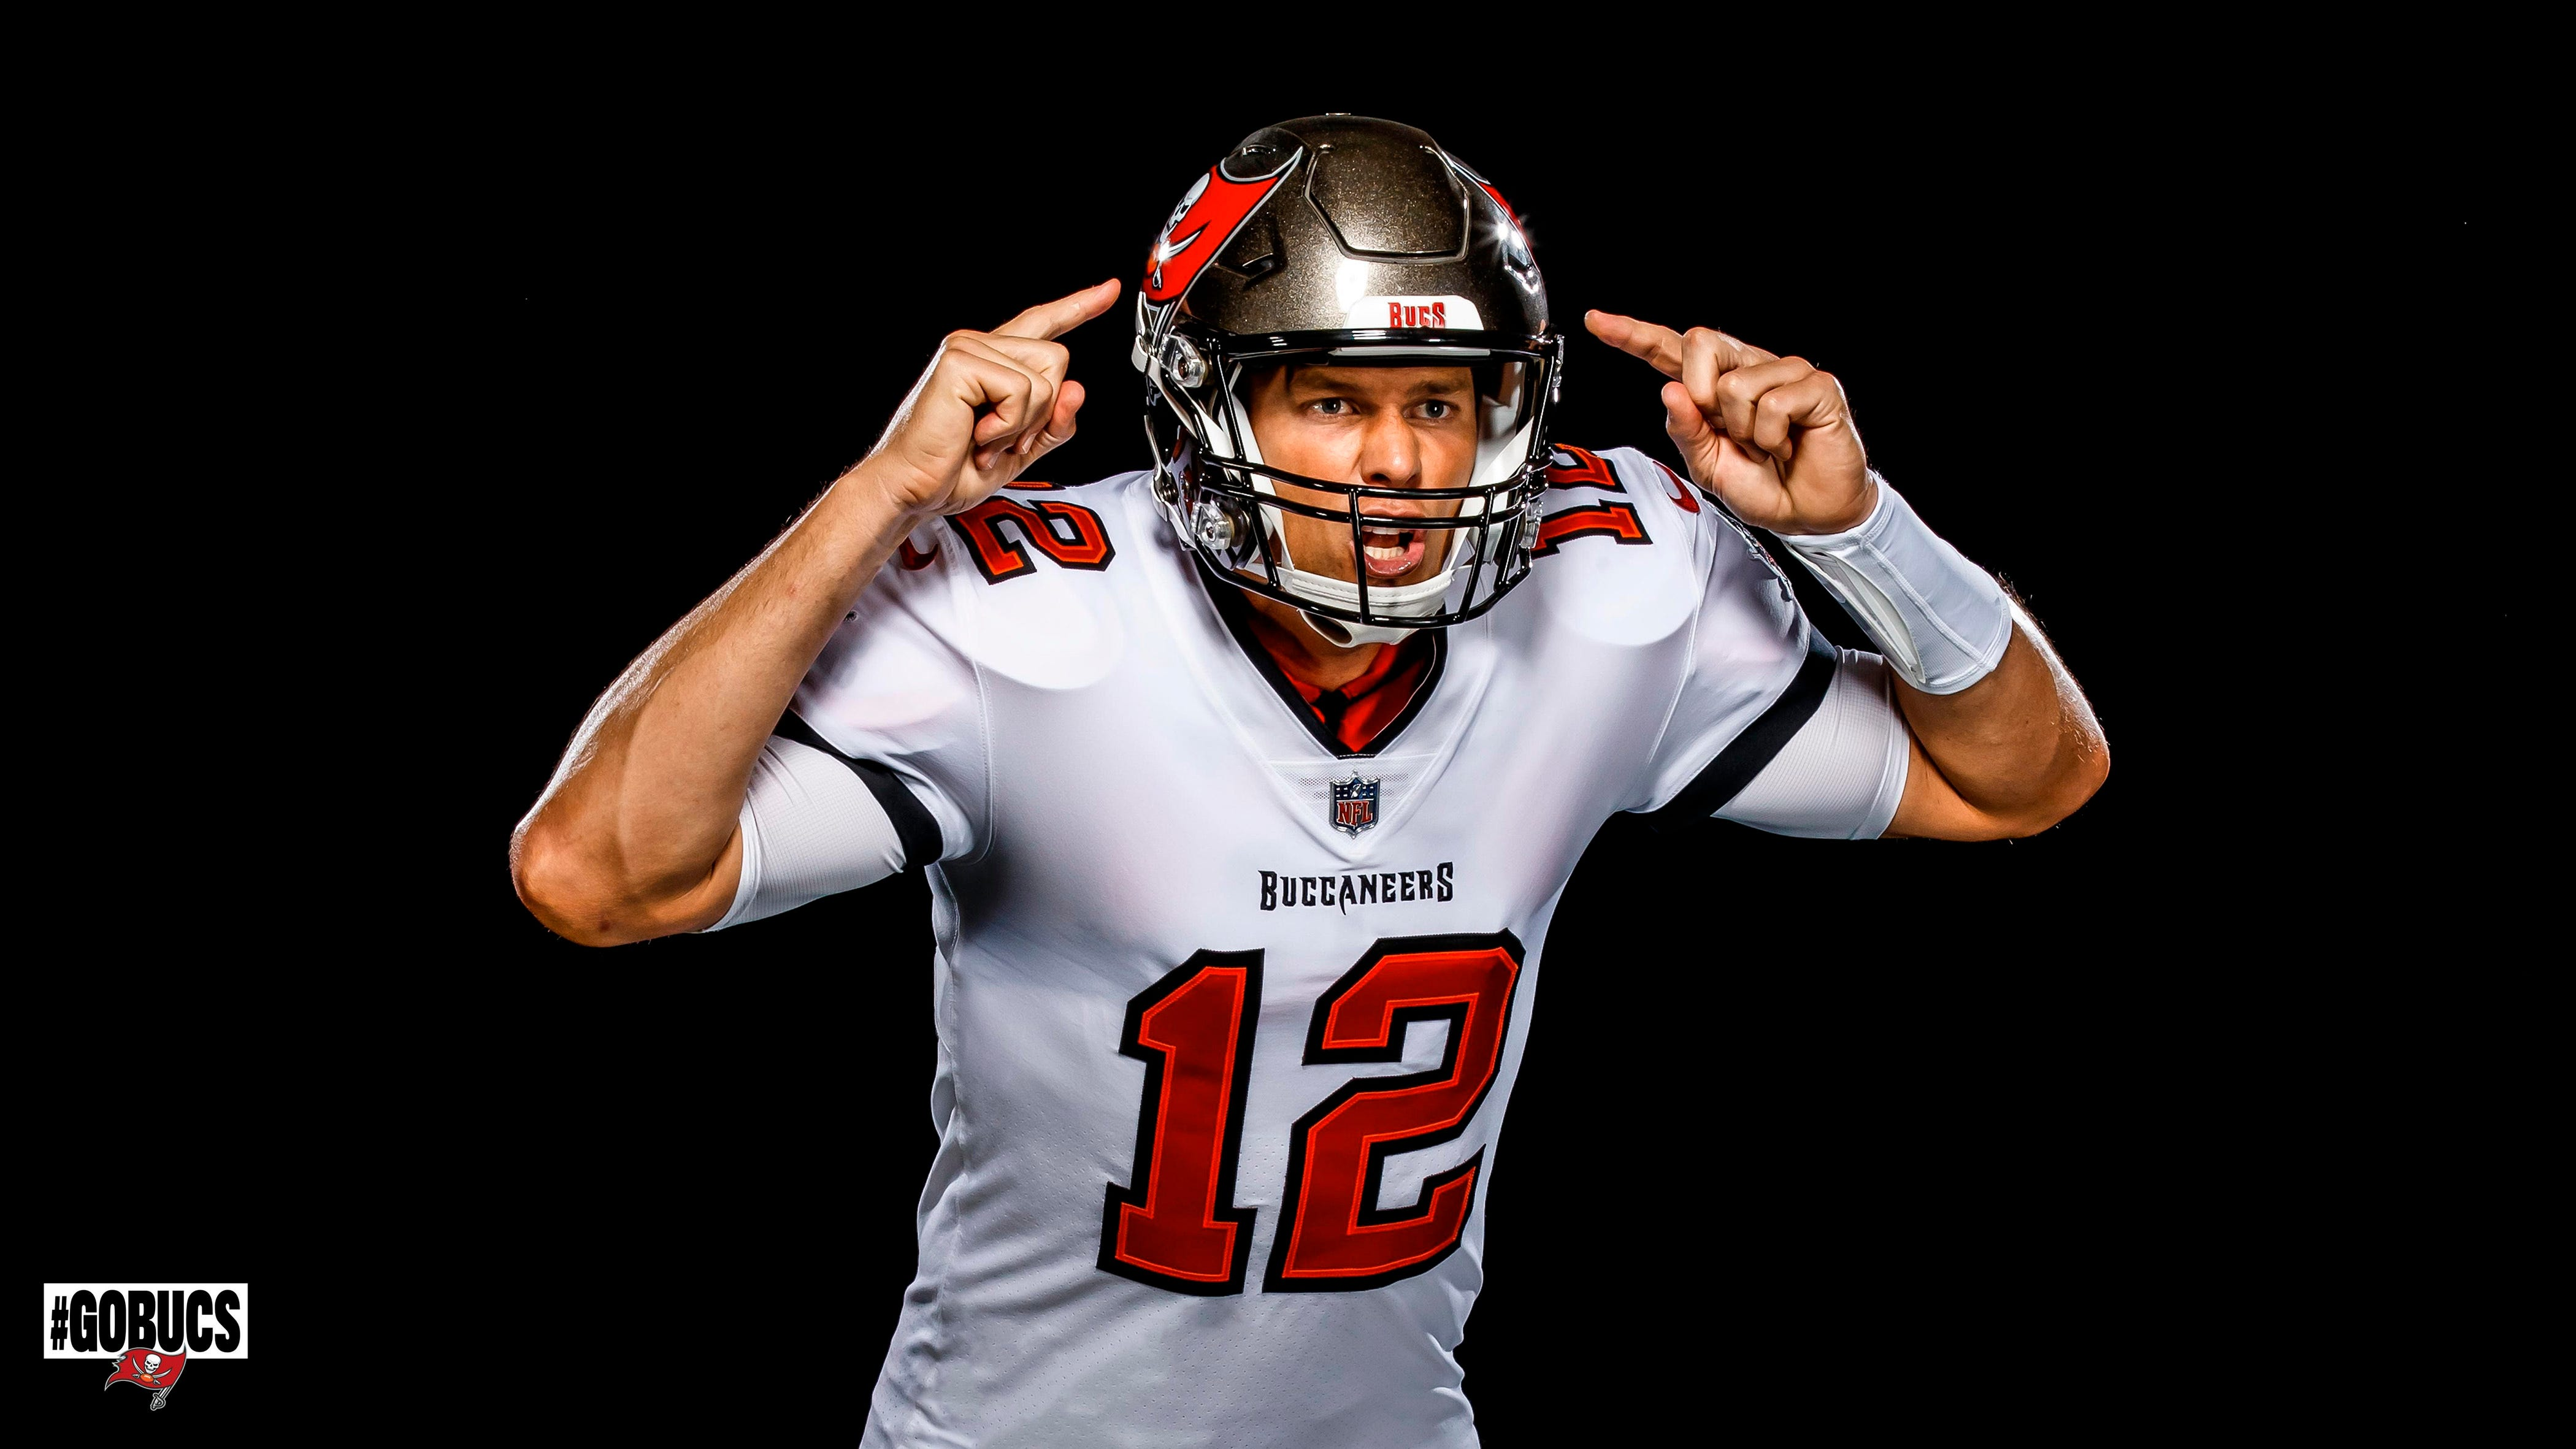 Bucs' new uniforms: Tom Brady will have fresh look with Tampa Bay